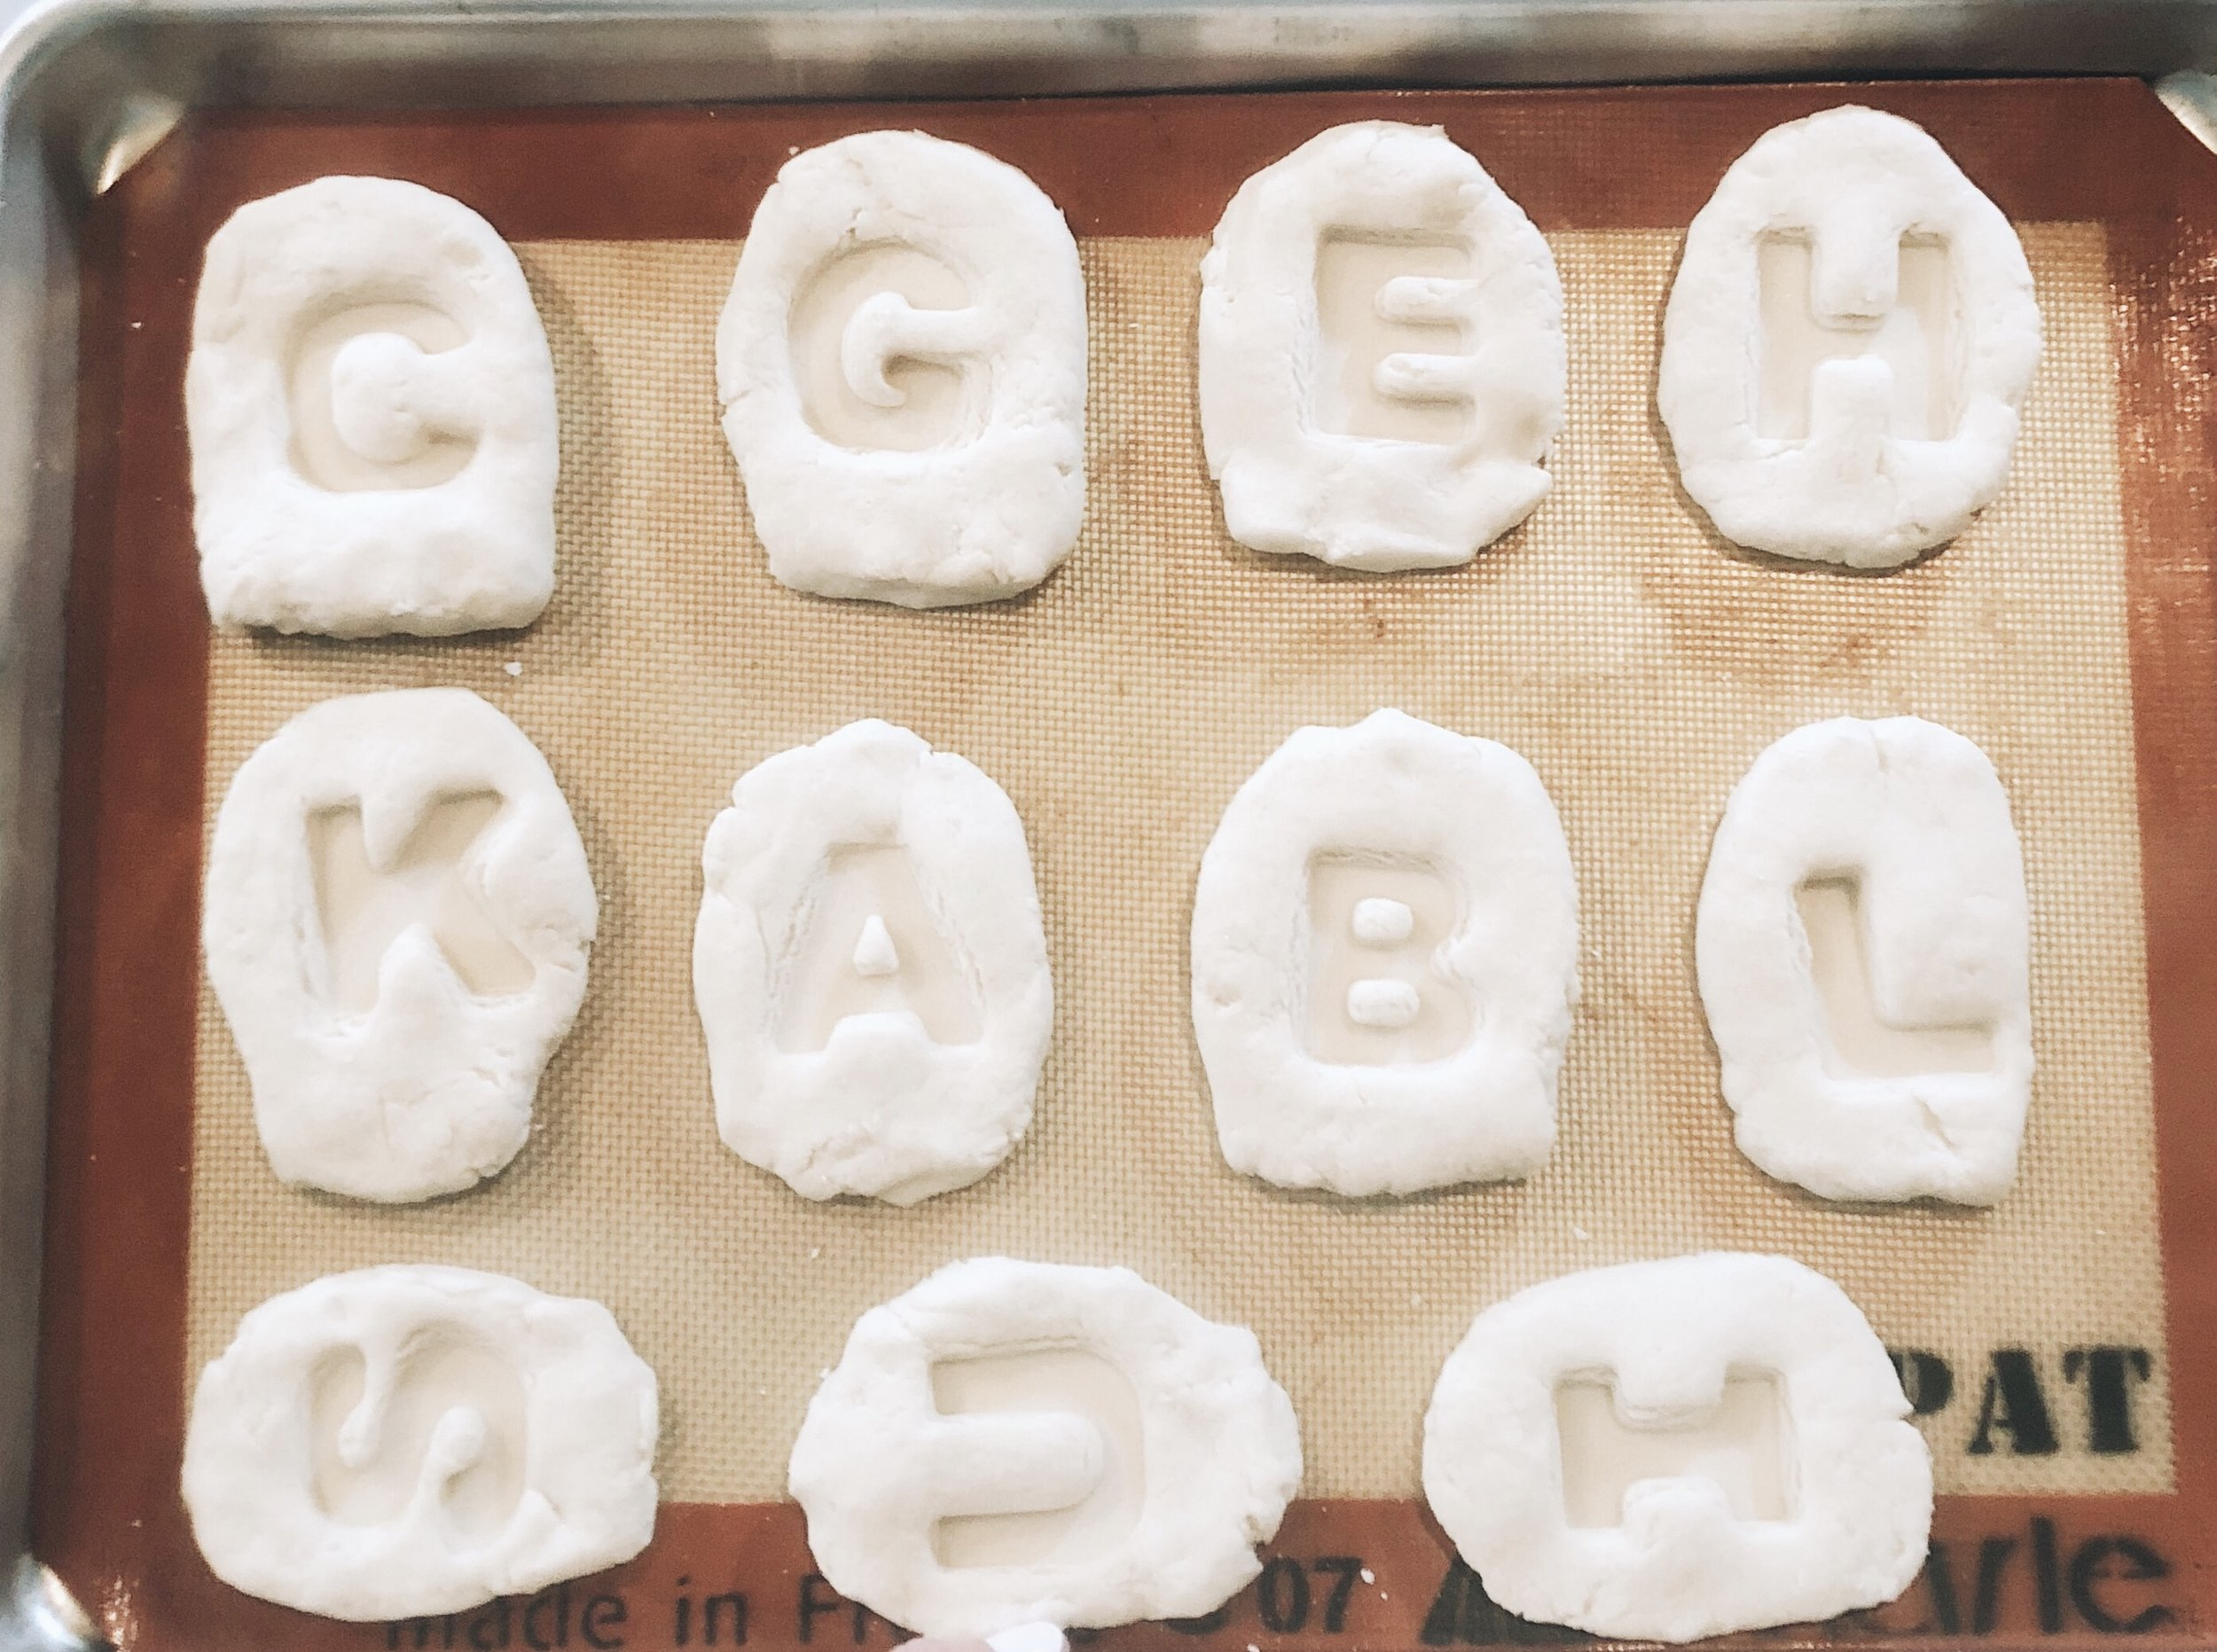 We ended up having 24 tombstones on two cookie sheets, but I think we could have had a couple more if we made some of them a little smaller.